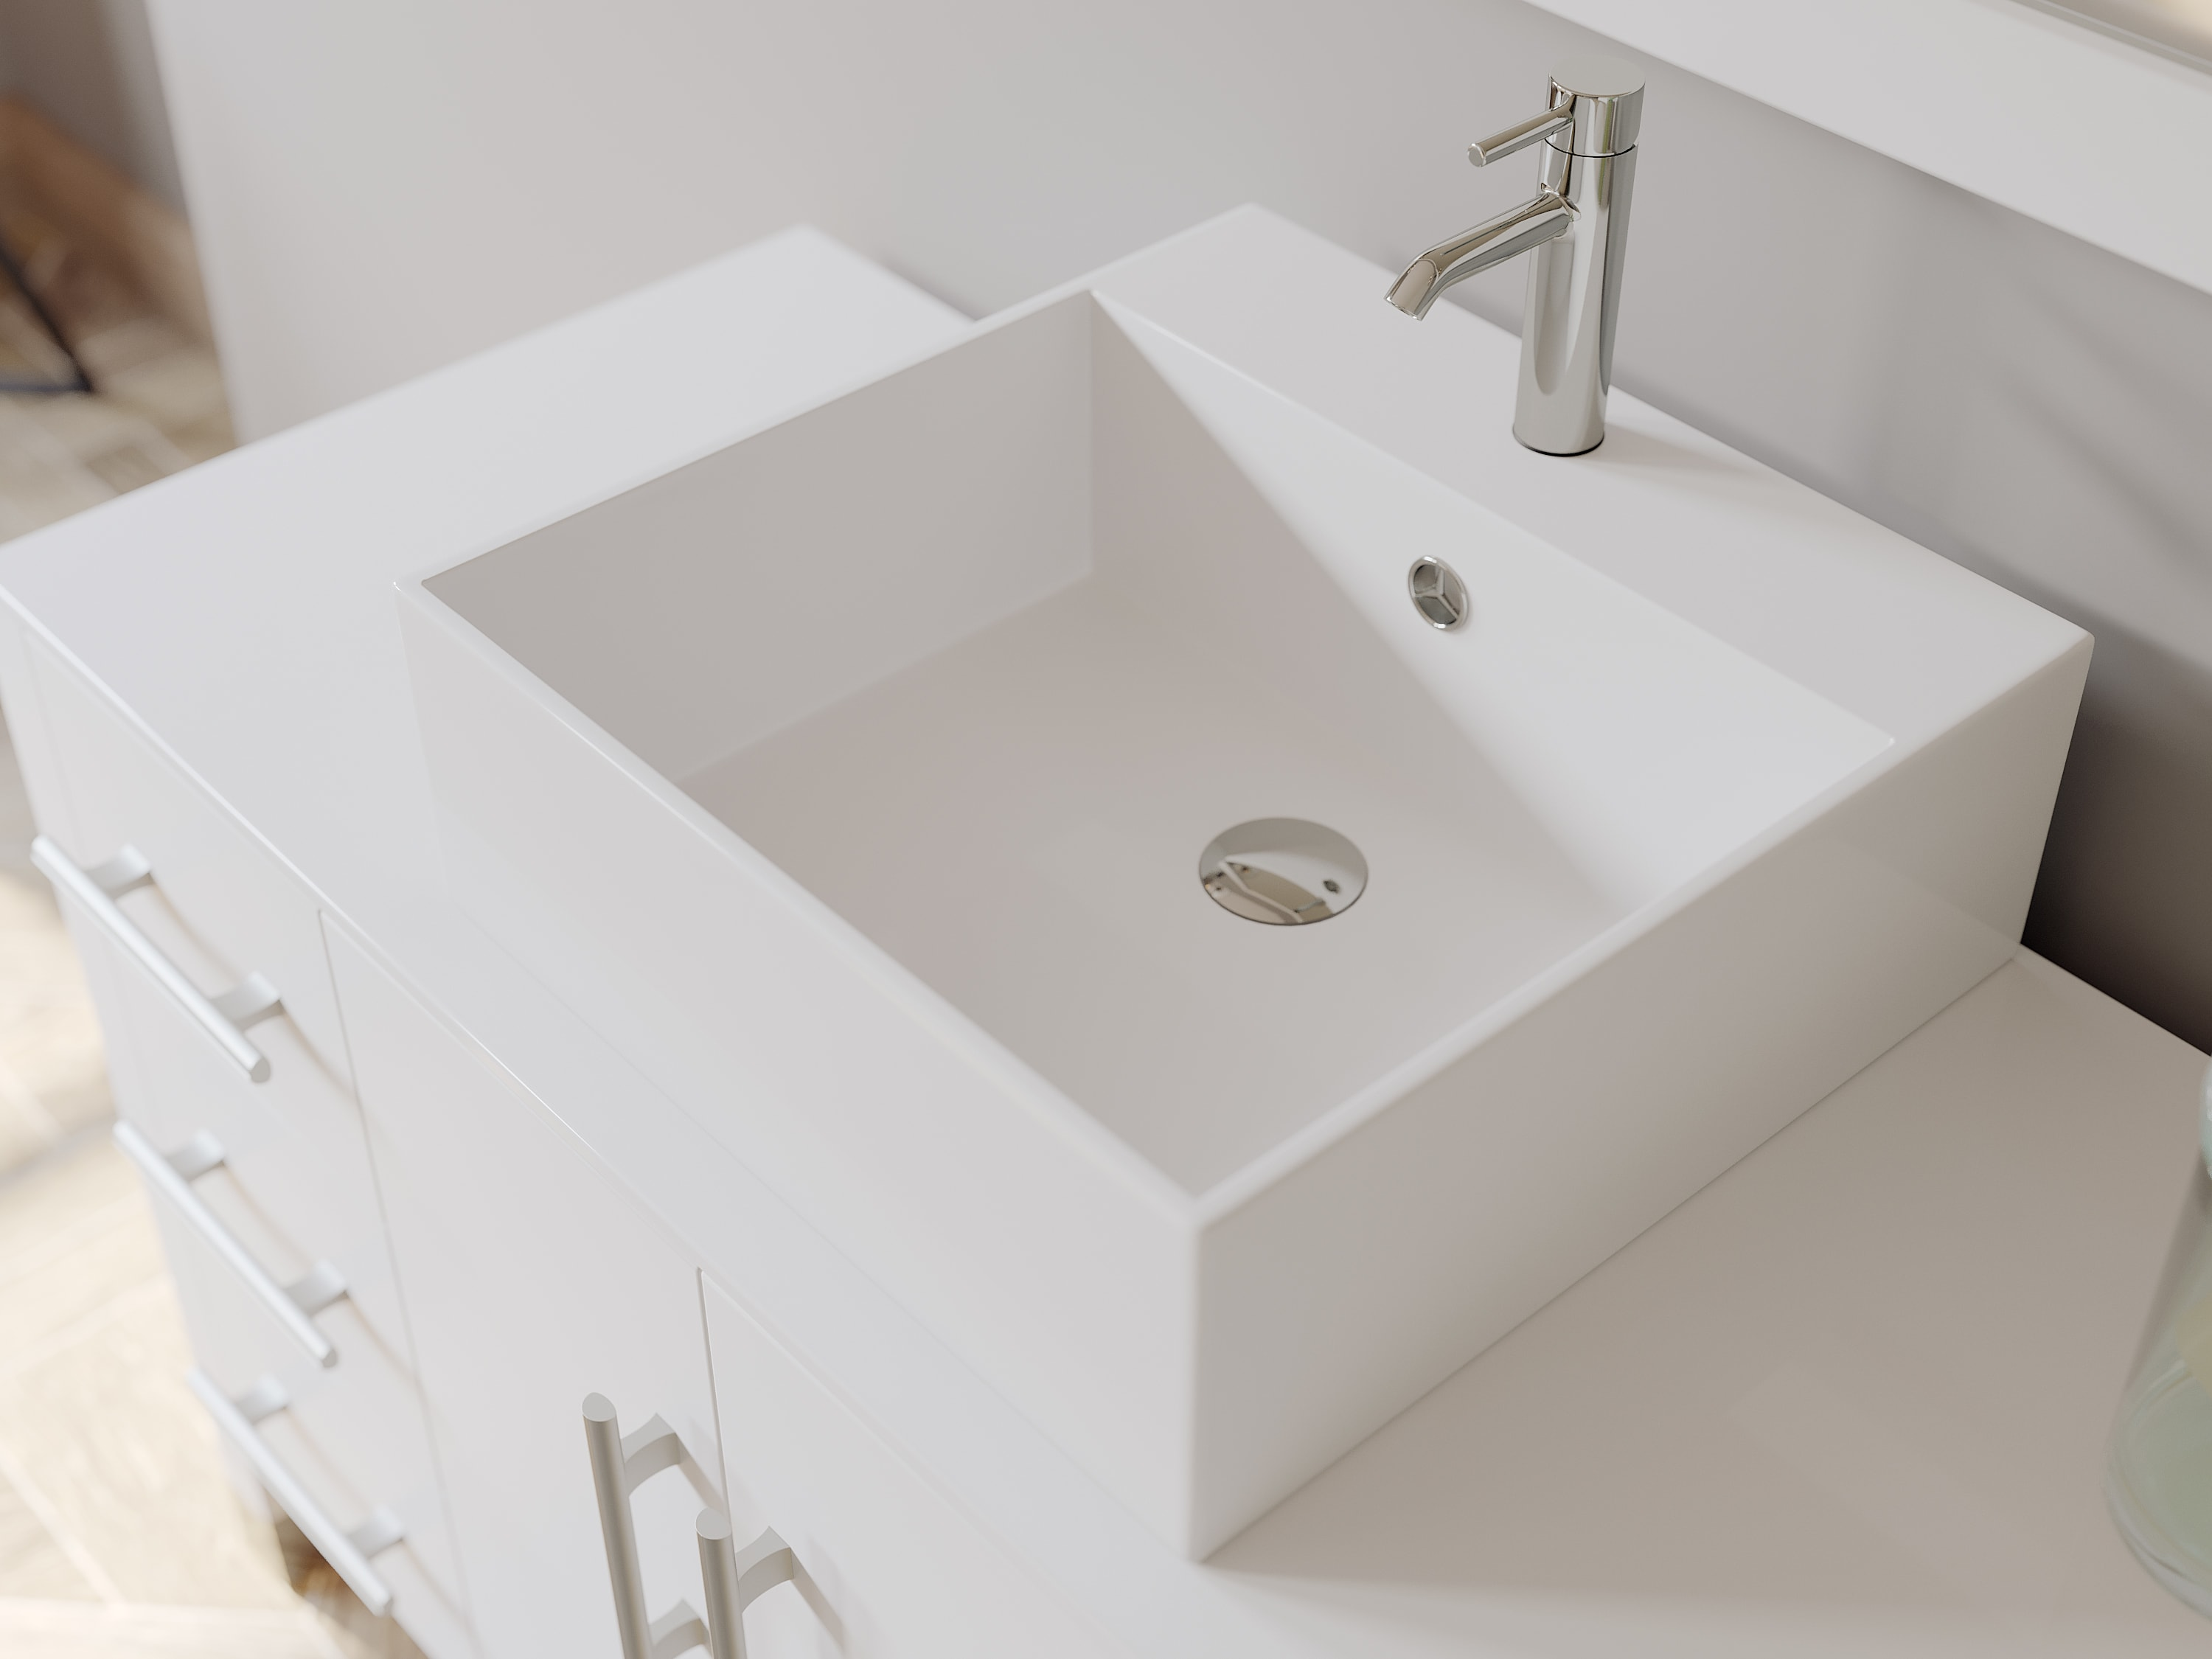 48 Inch White Wood And Porcelain Vessel Sink Bathroom